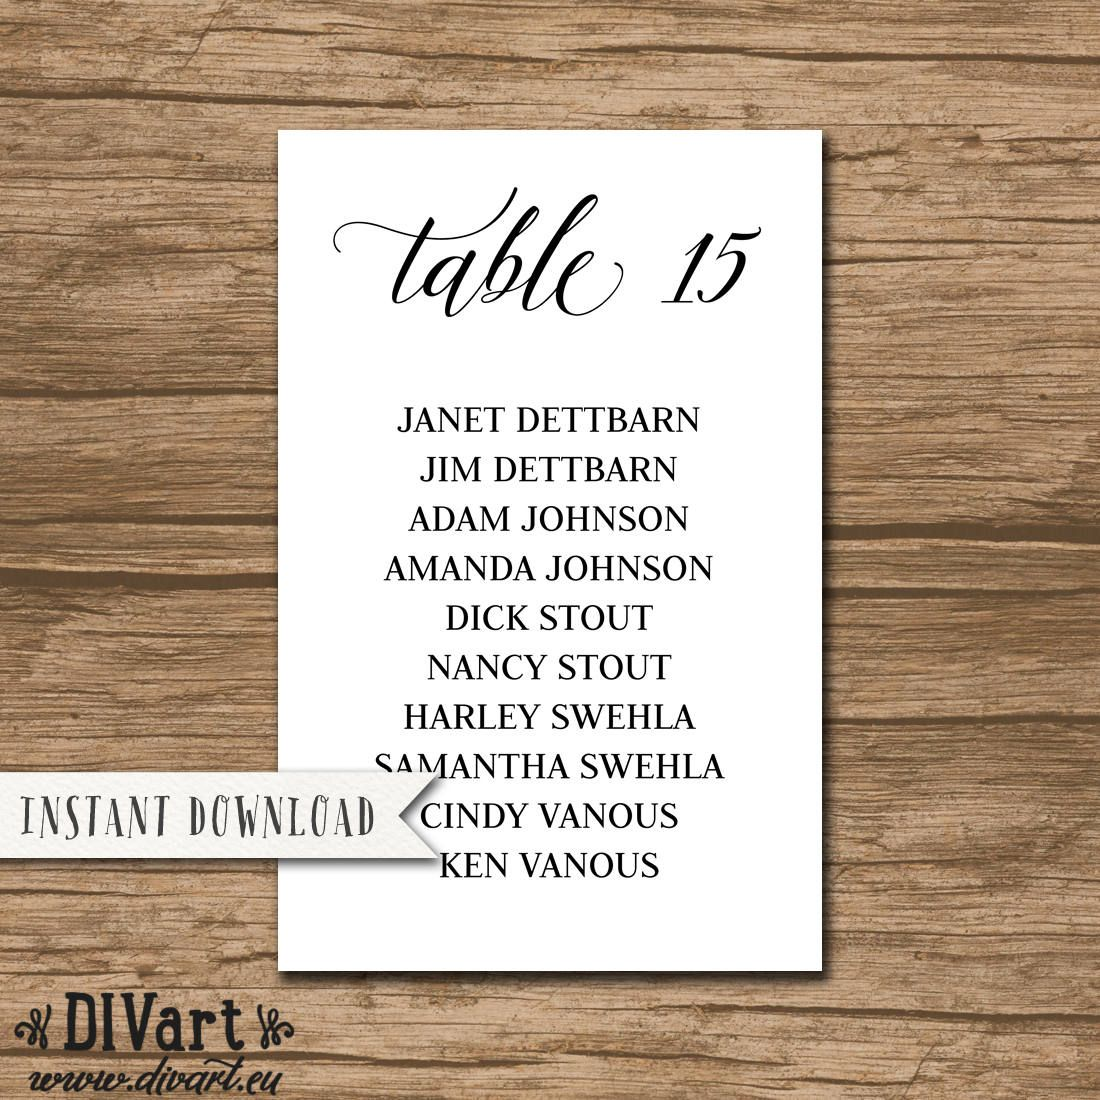 Wedding Seating Chart Wedding Seating Plan Rustic Seating Chart